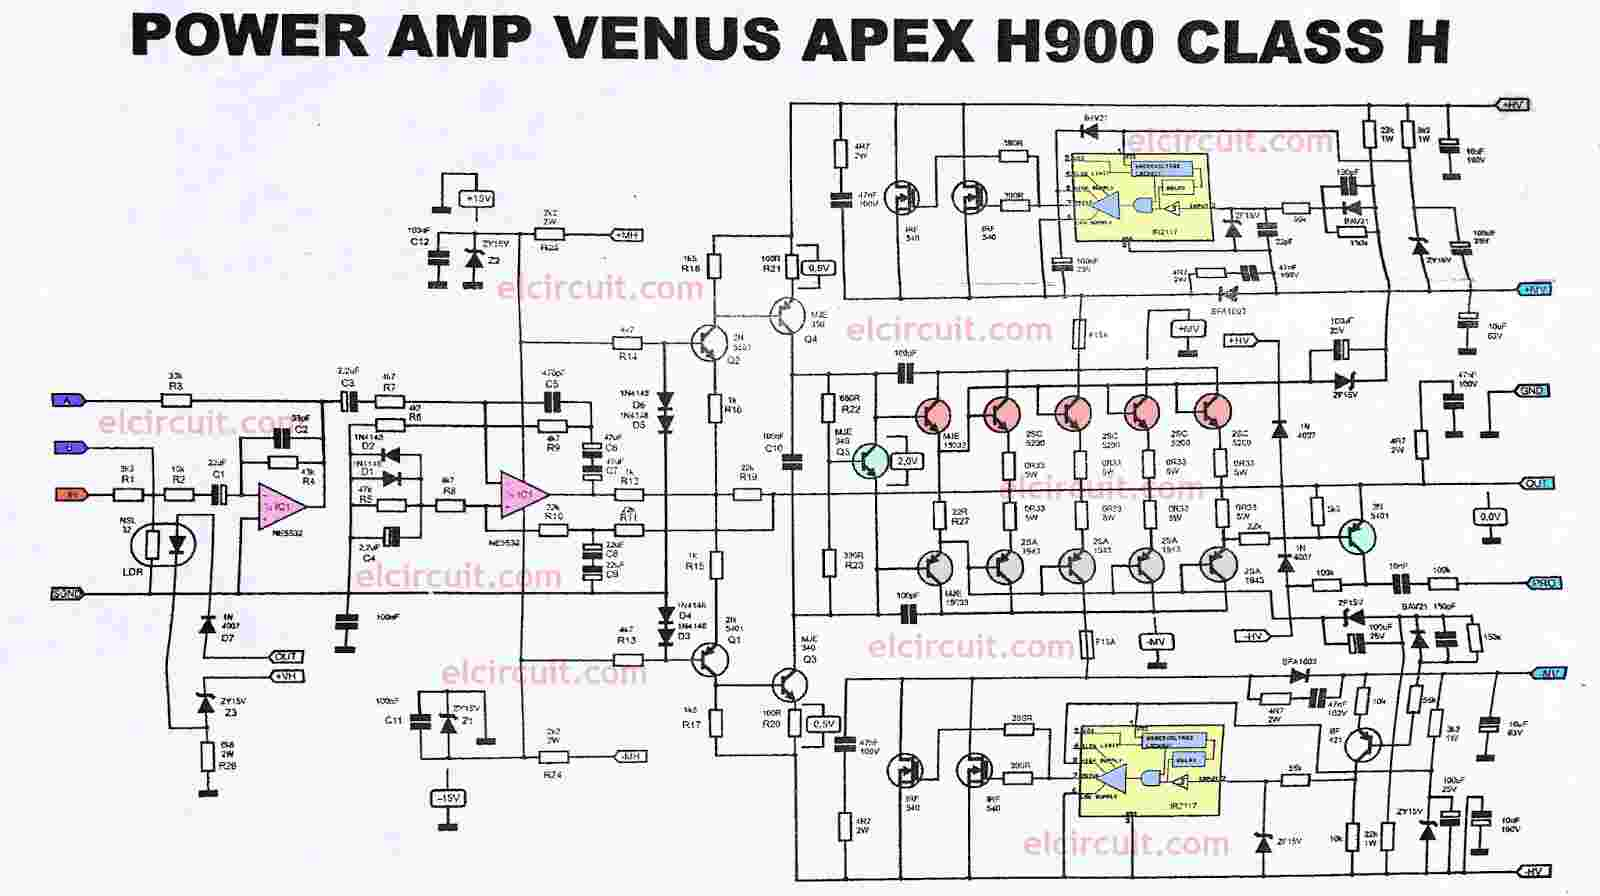 Power Amplifier Ocl 500watt Rms Electronic Circuit T 2000w Amp Using Sanken Apex H900 Efficient Flat And Powerful